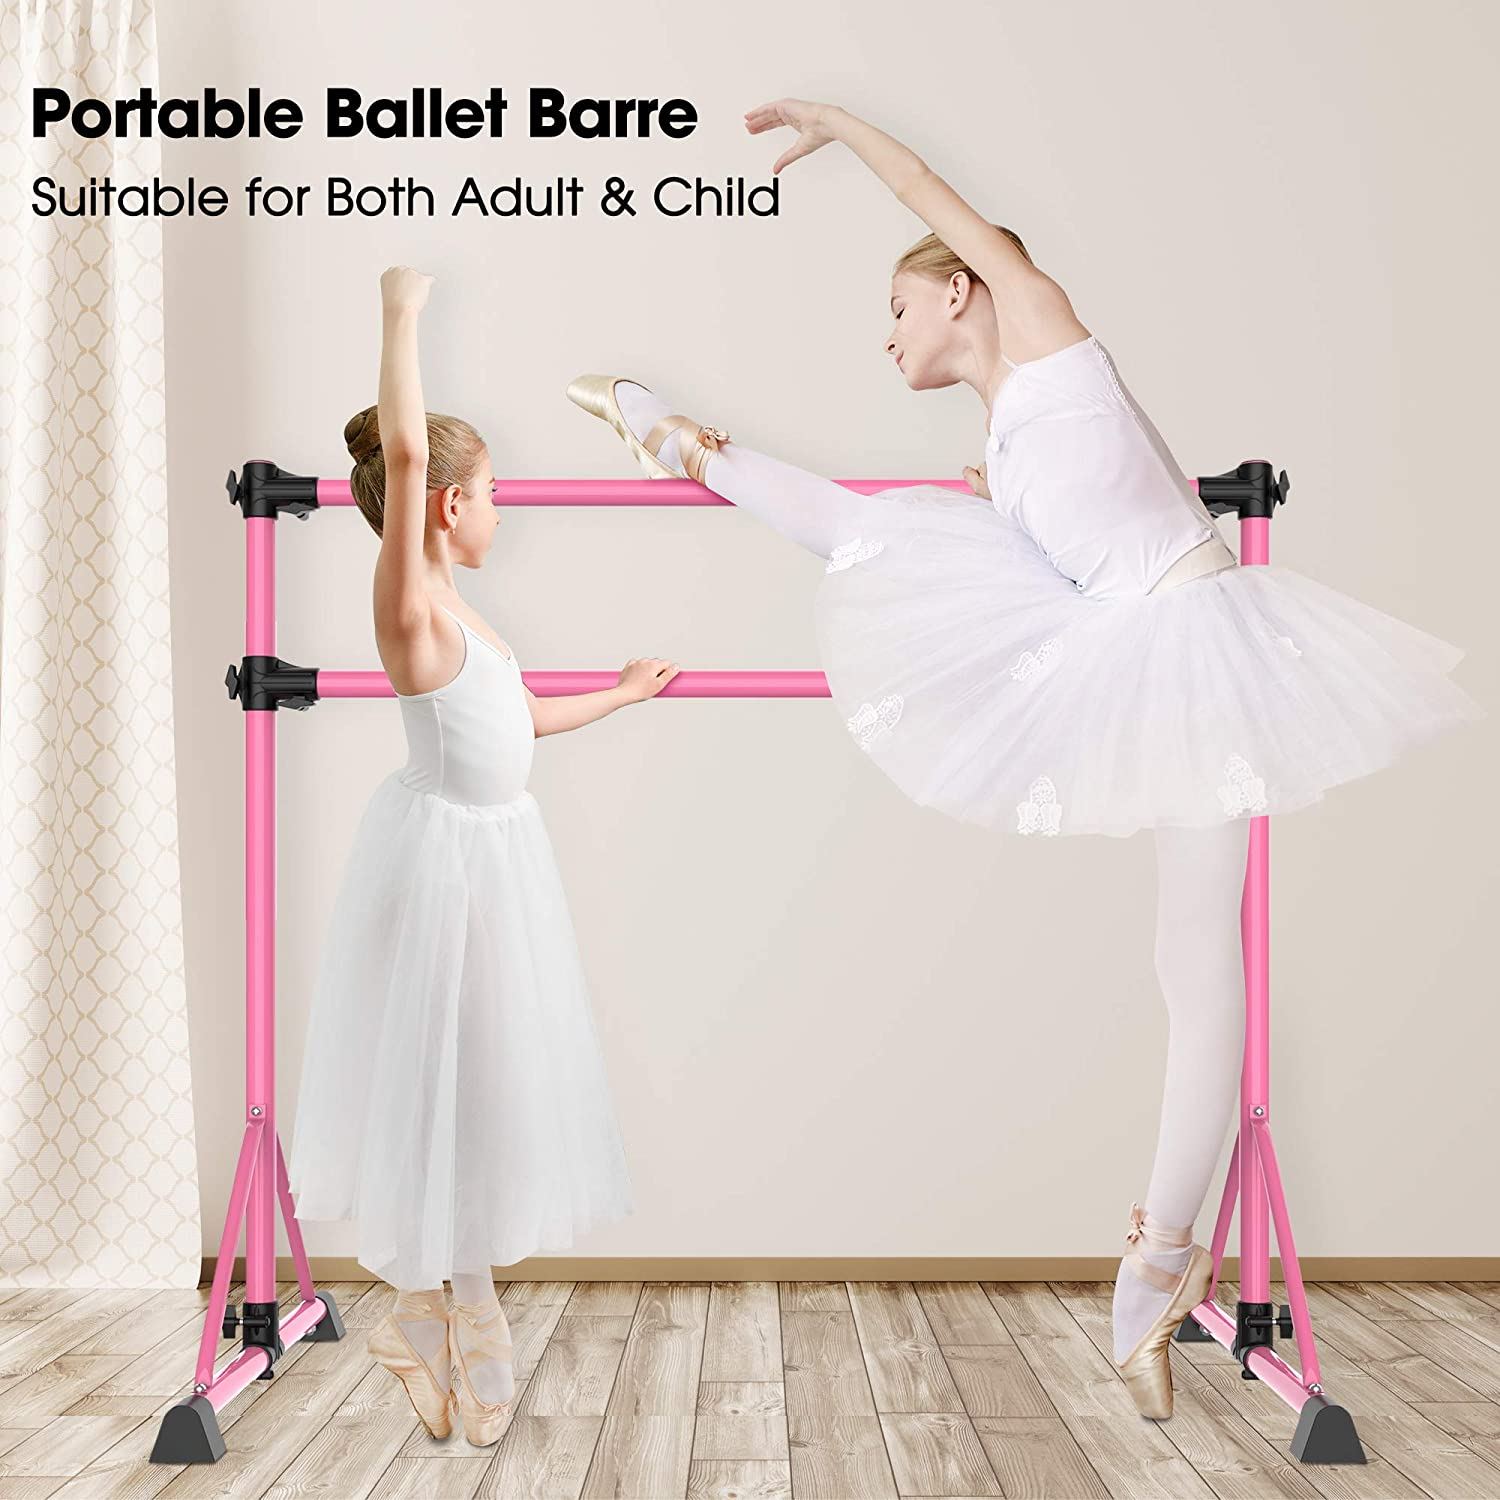 TOUSKII Ballet Barre Portable for Home, Kids Ballet Bar Adjustable Double Freestanding Ballet Exercise Equipment, 4FT Dance Bar for Women with Adjustable Stretcher for Dancing Stretch, 250LB Capacity : Sports & Outdoors